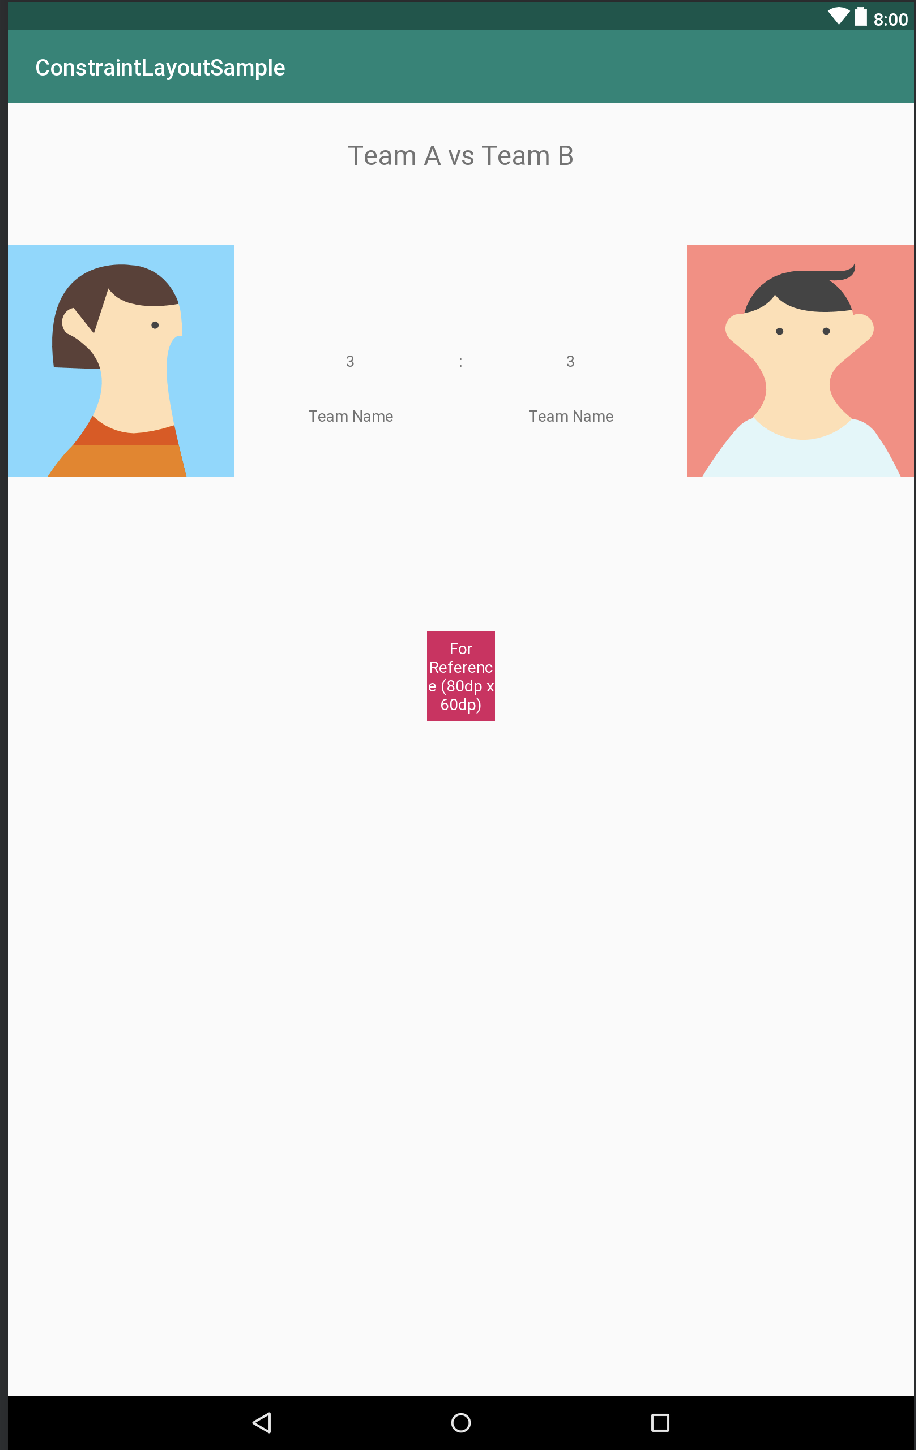 Getting your constraints right — ConstraintLayout